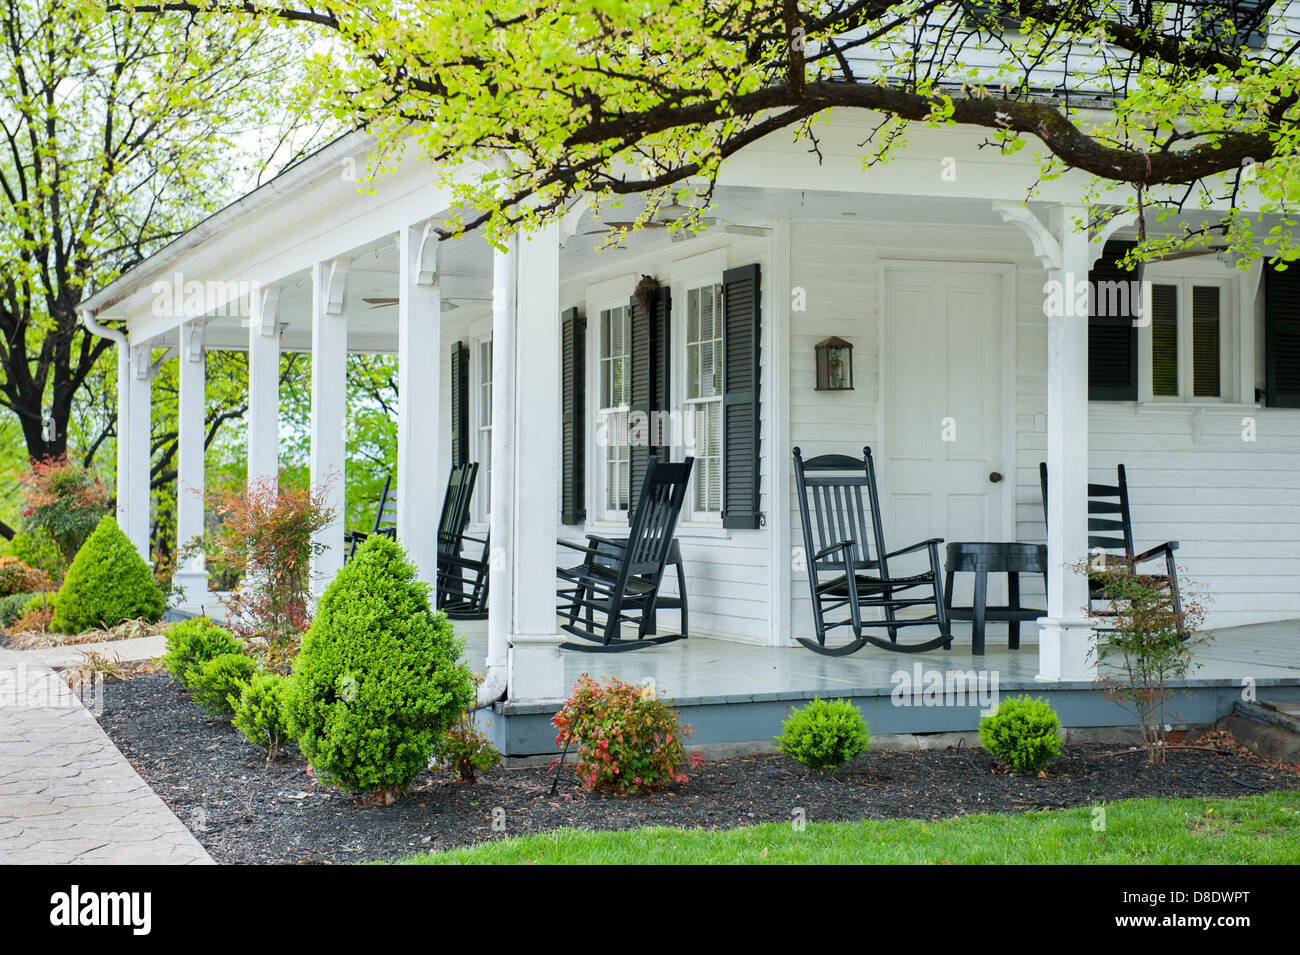 The Old Kentucky Home Tour